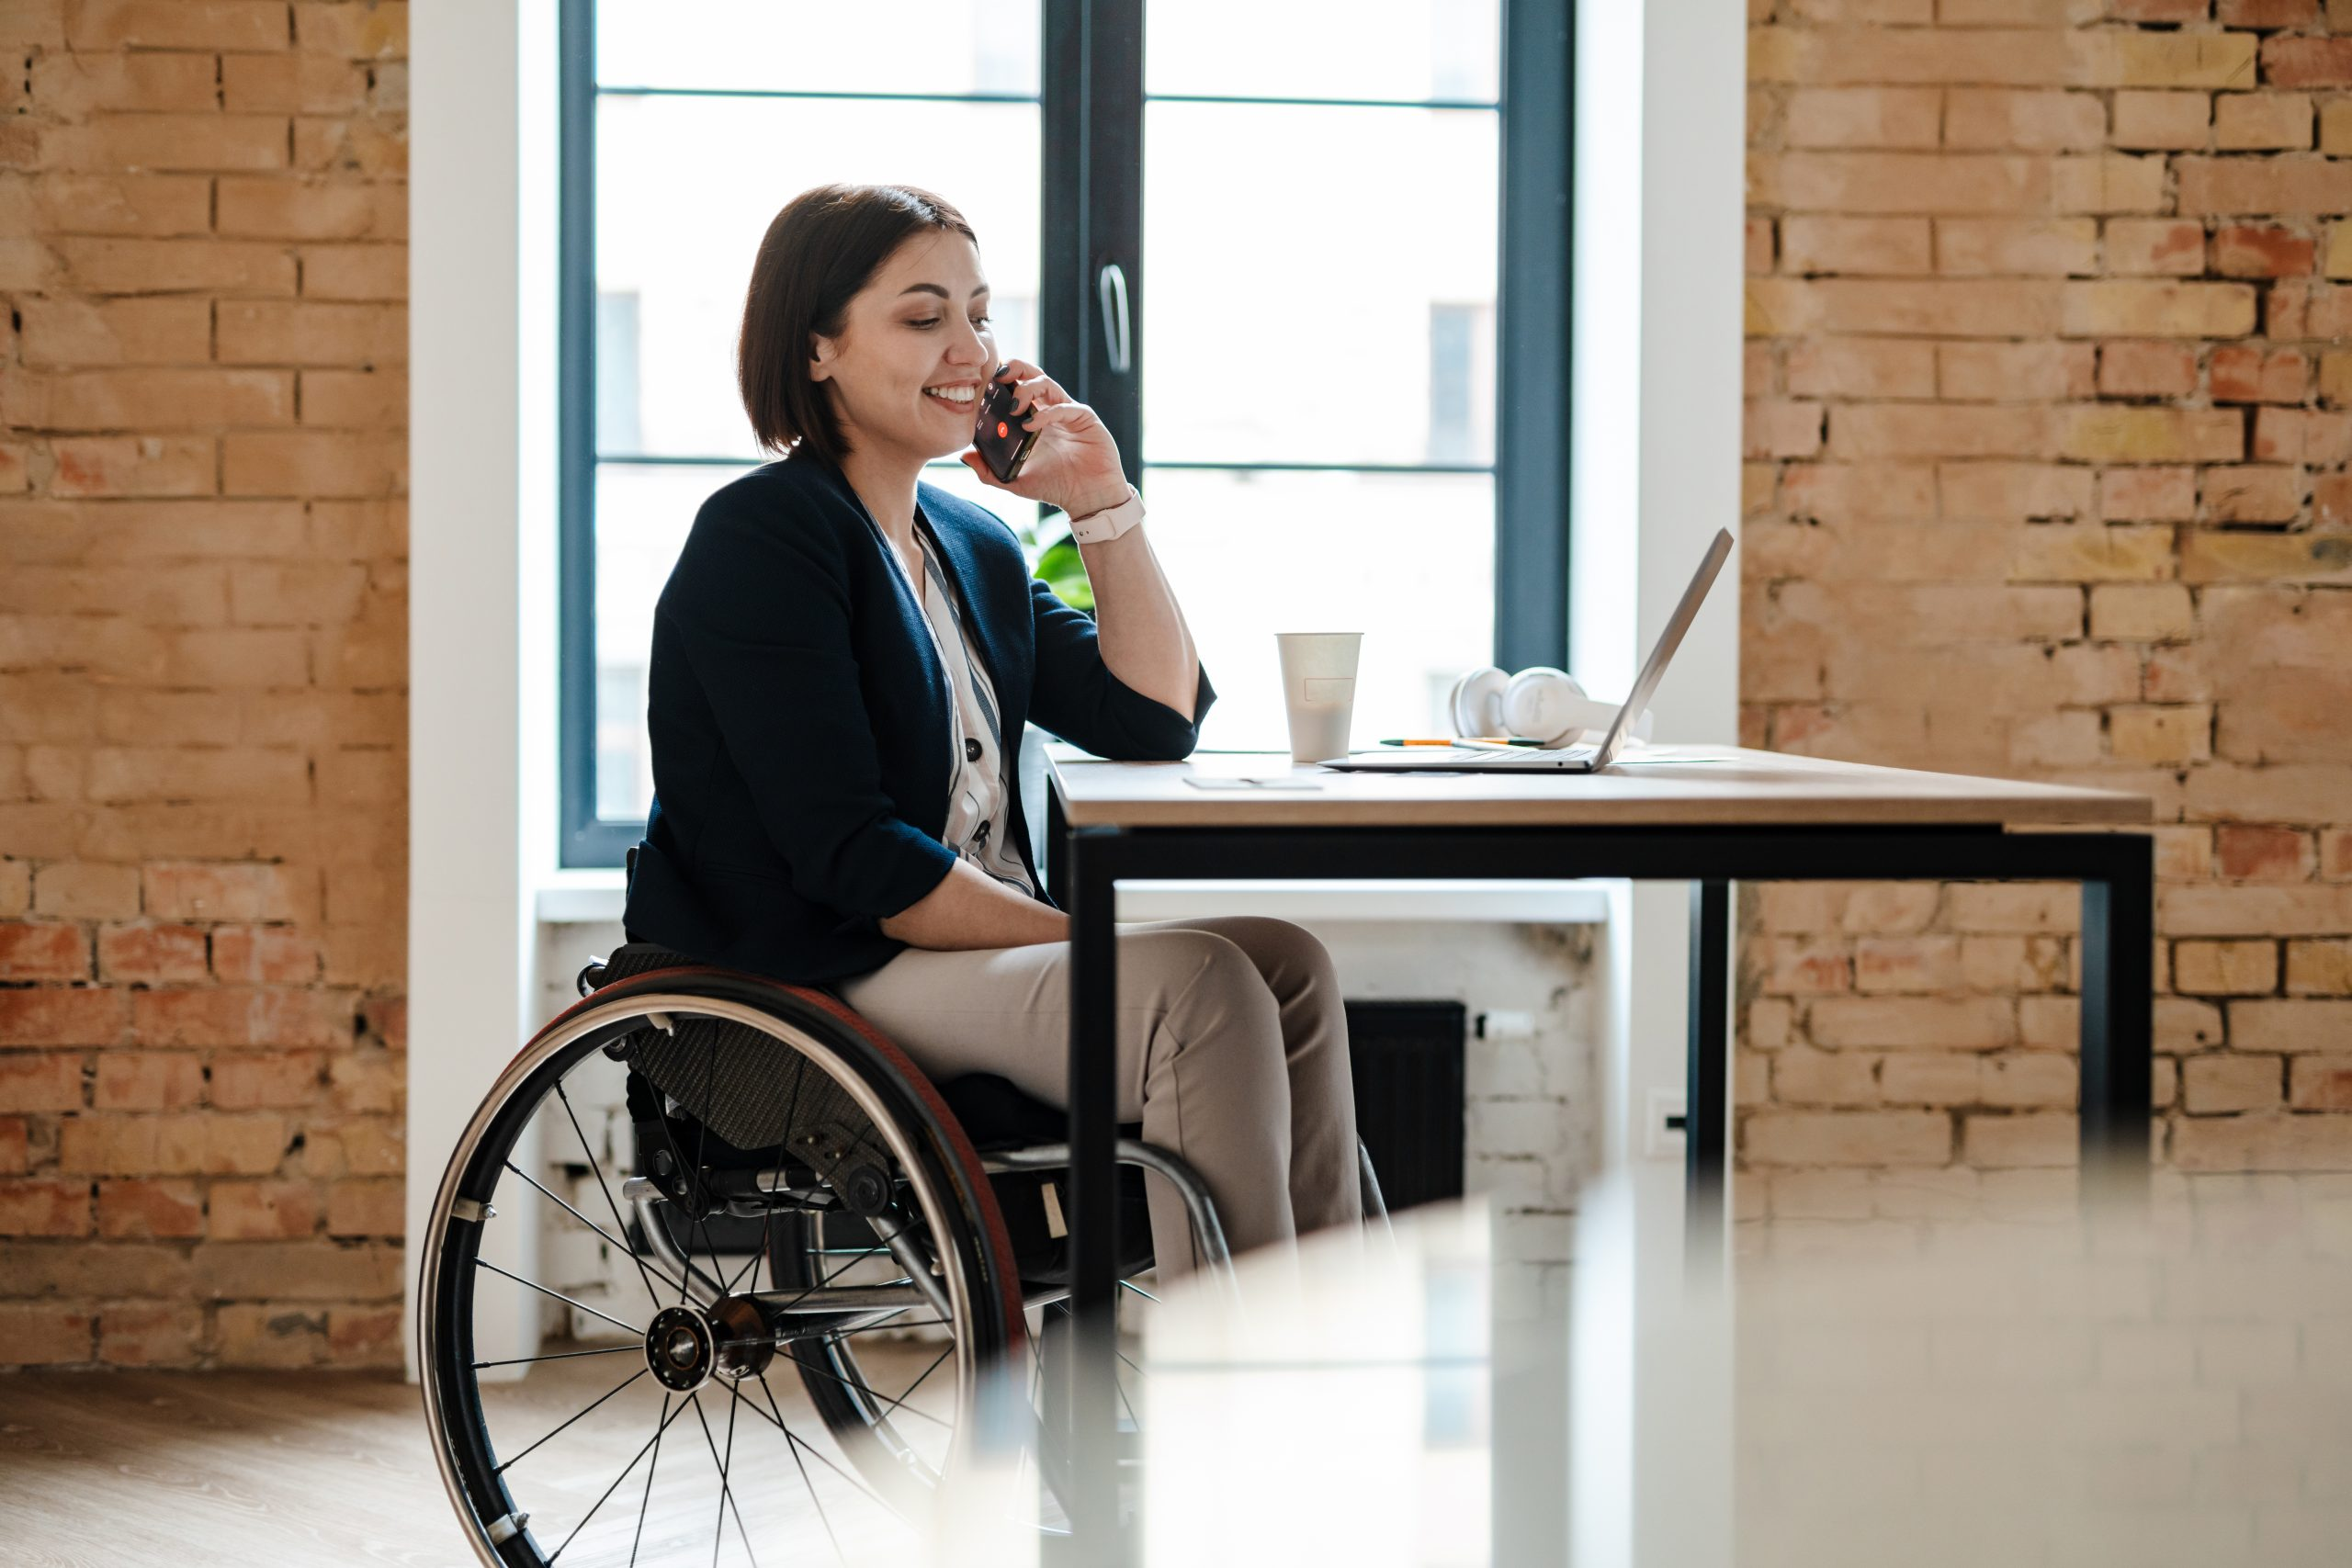 Young disabled business woman in wheelchair working at office desk with a laptop.